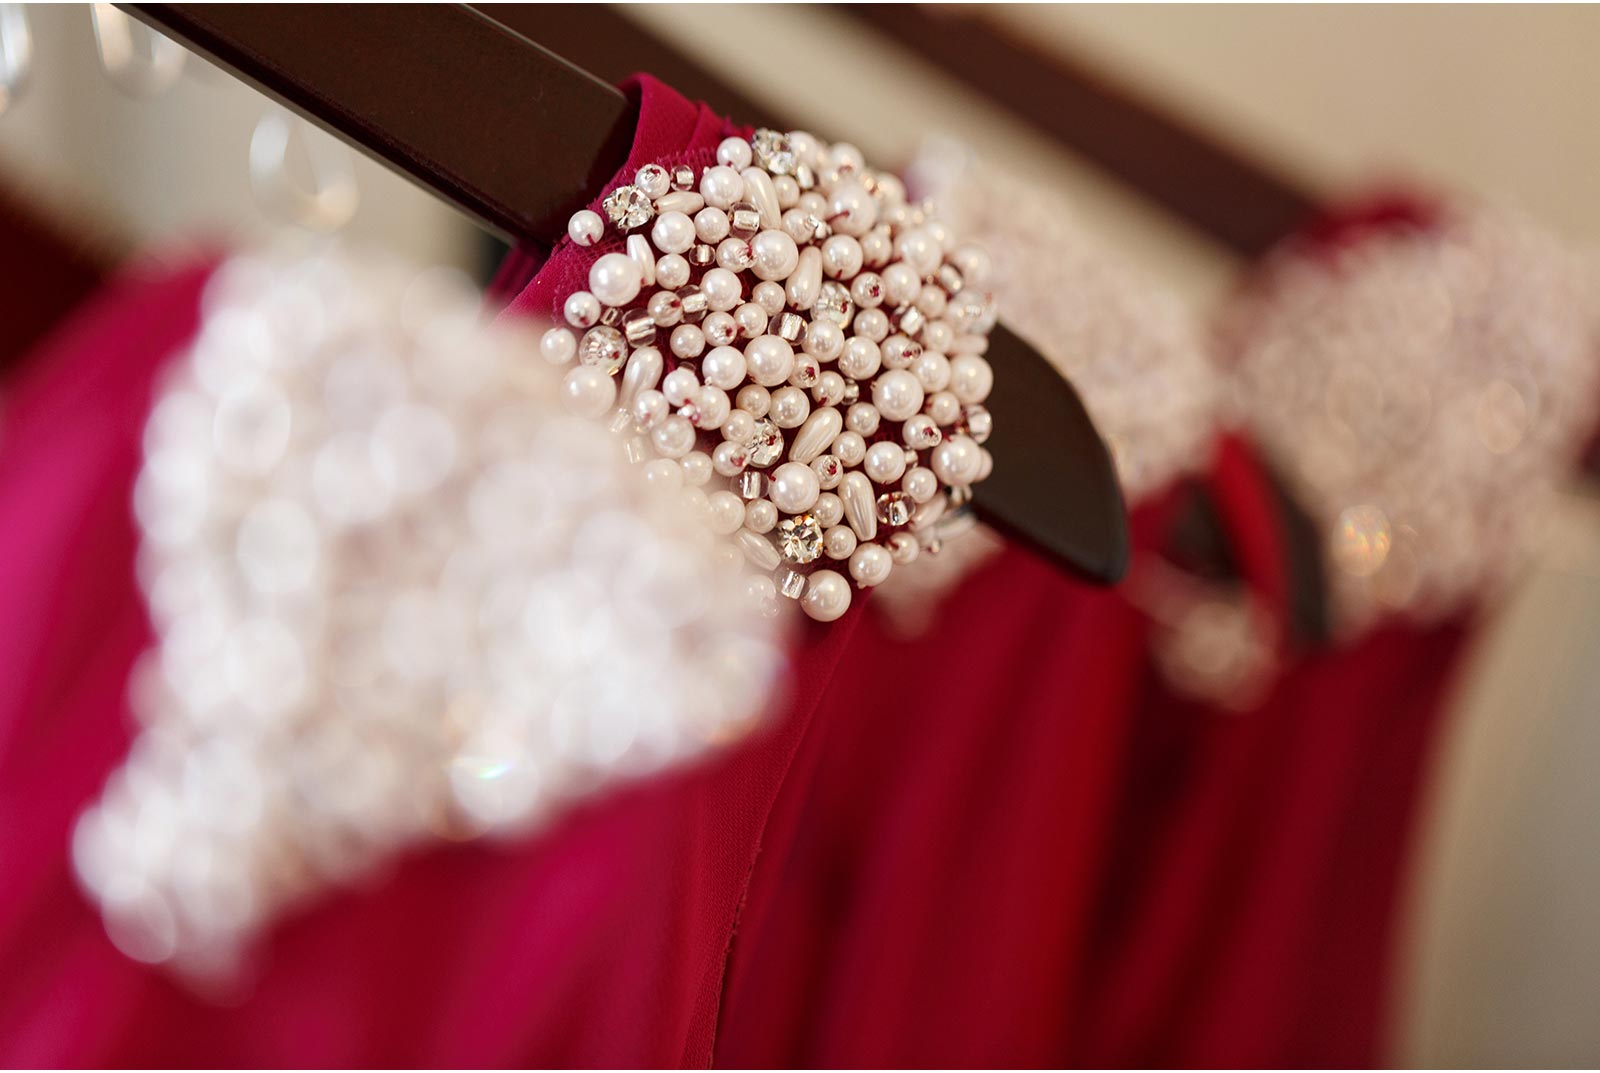 row of bridesmaids dresses with ornate beading on the shoulder